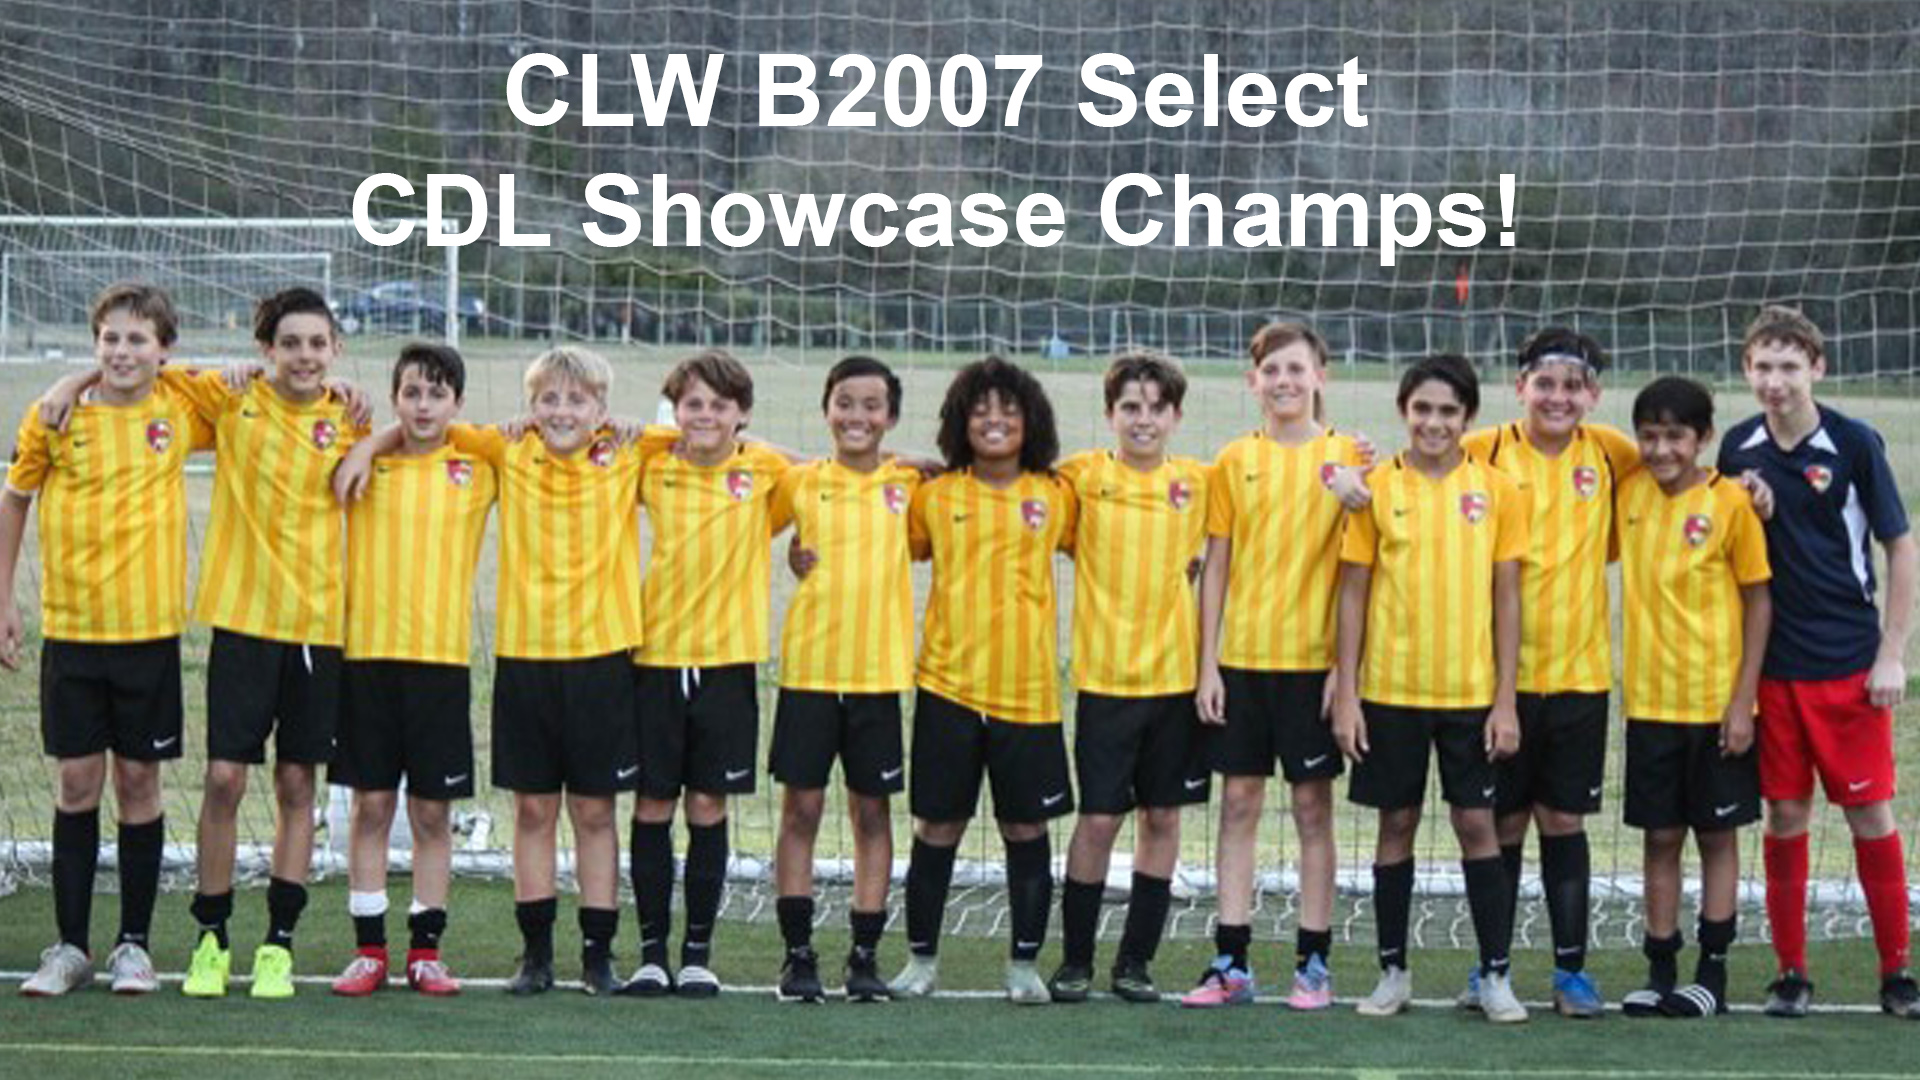 CLW B2007 Select CDL Showcase Champs!